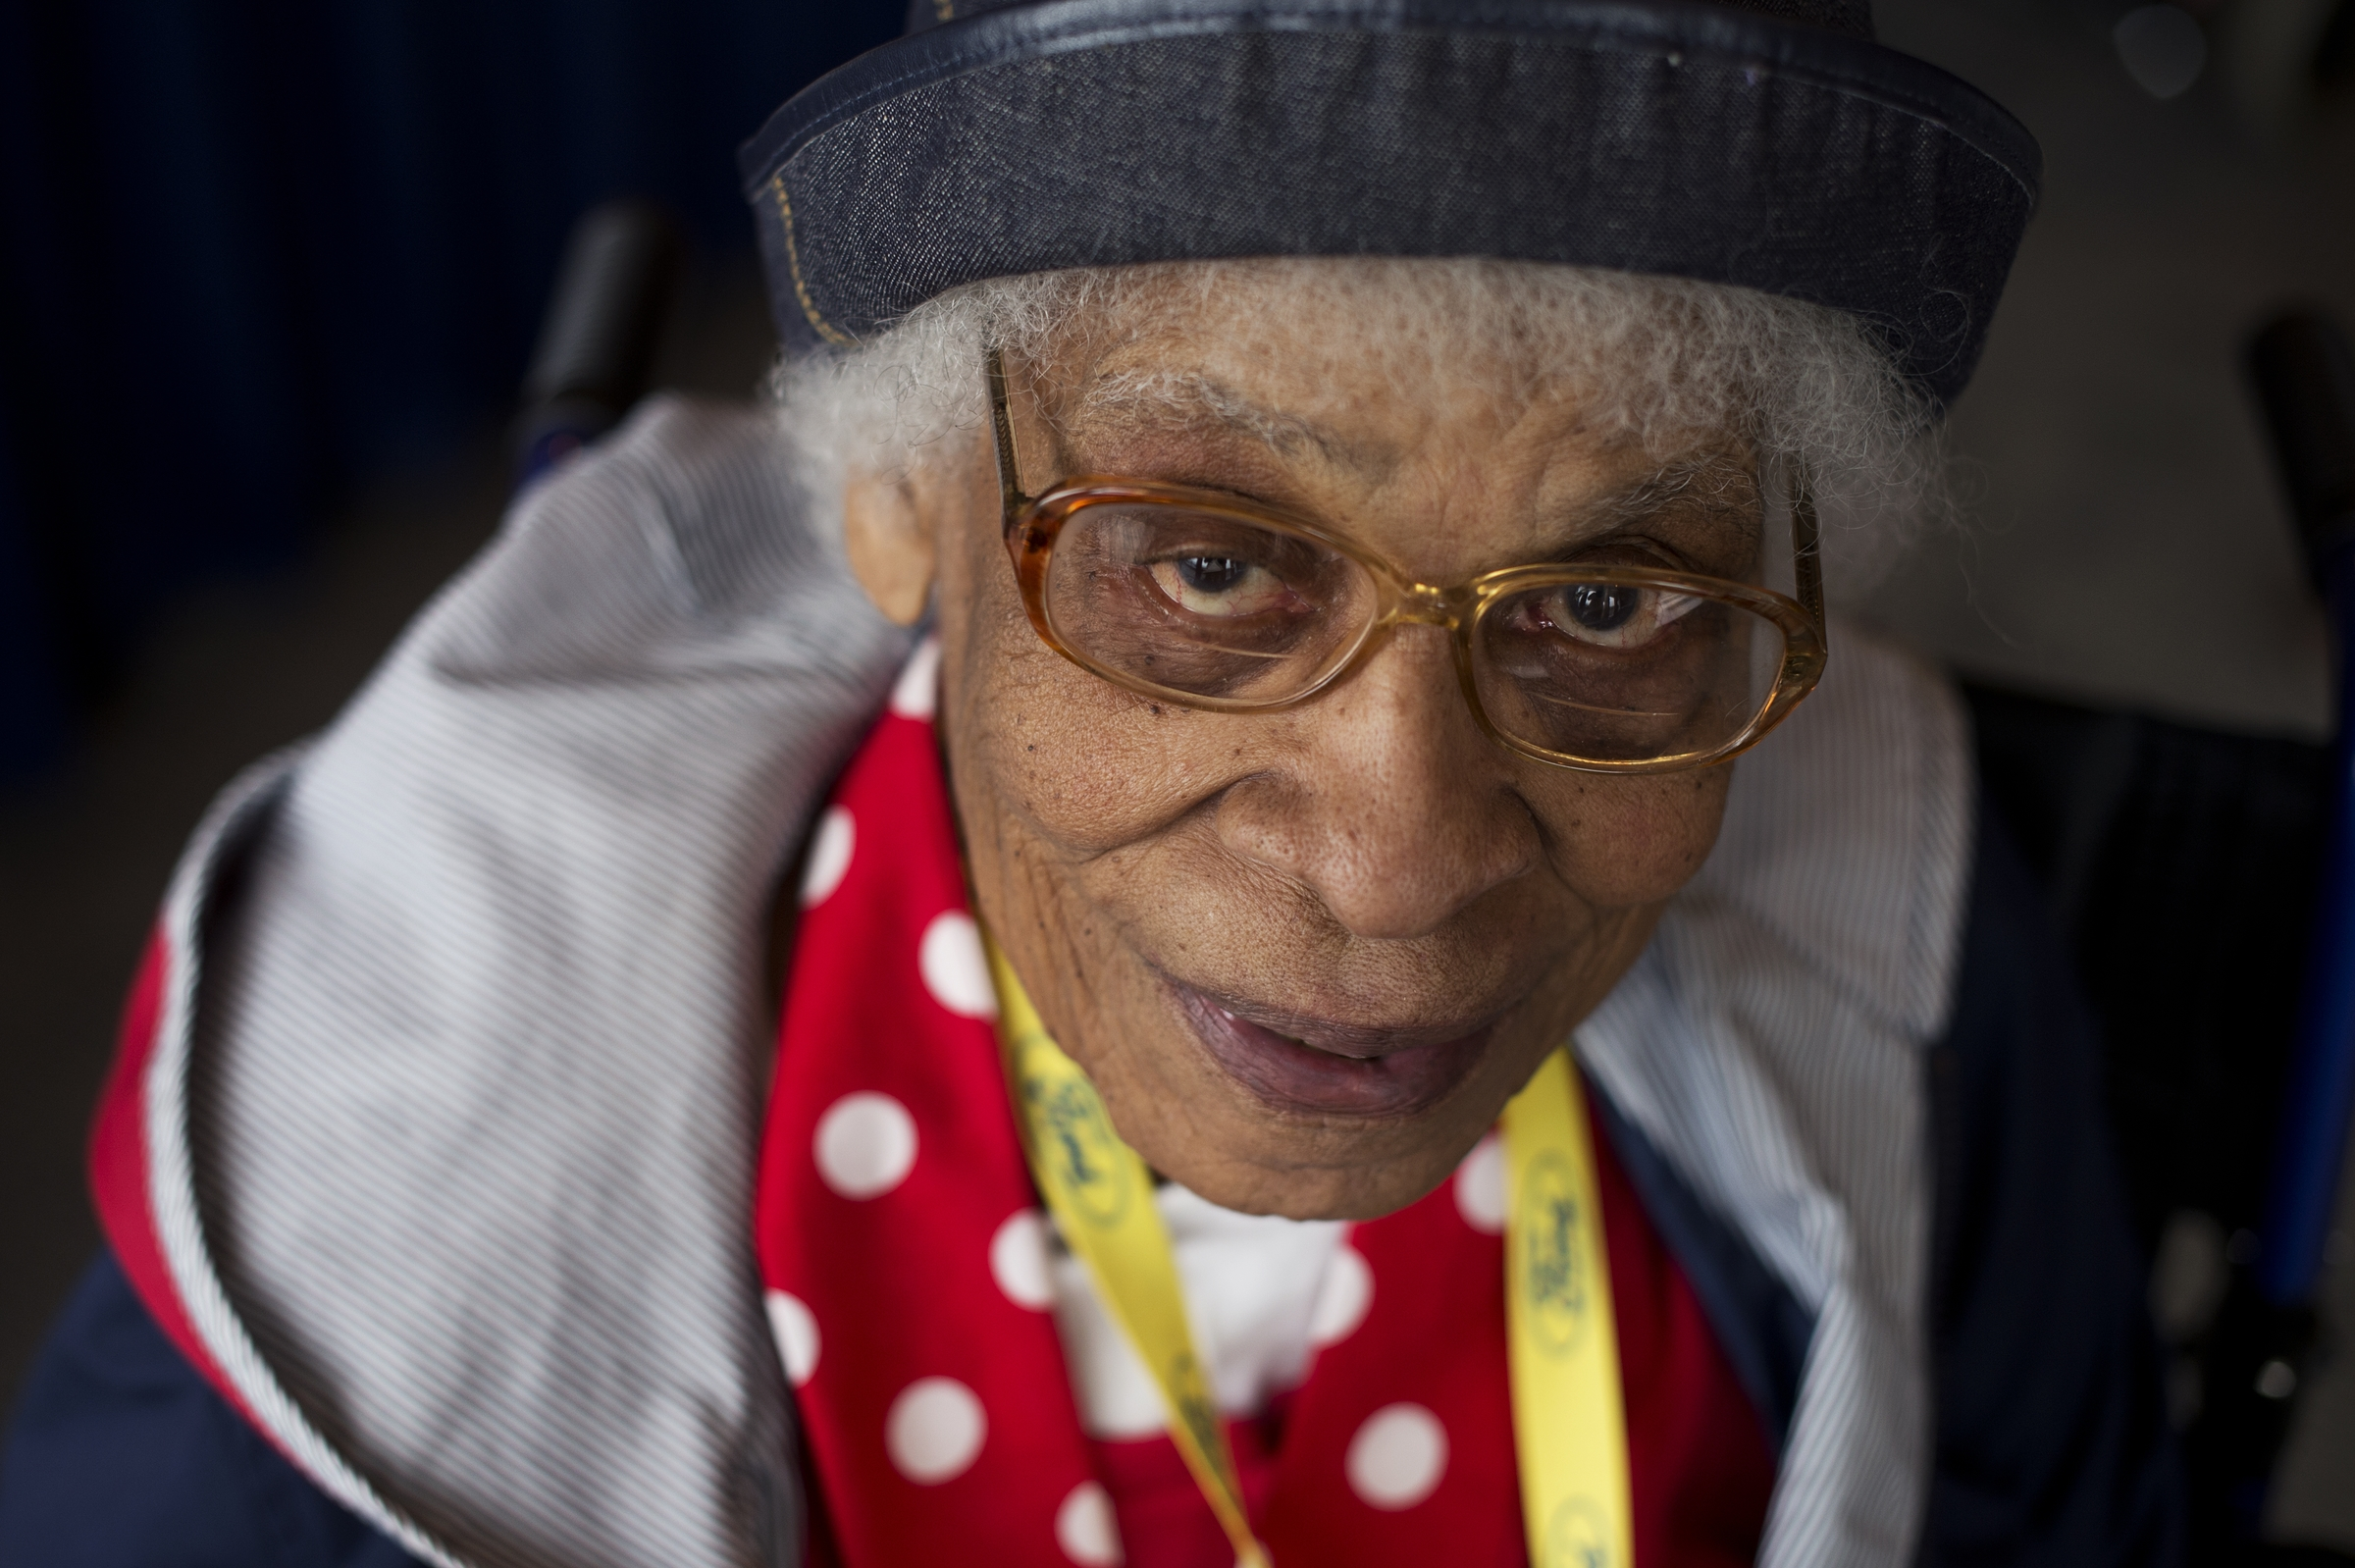 UNITED STATES - MARCH 22: Clara Doutly, a World War II era Rosie the Riveter, is photographed during a lunch for a group of about 30 Rosies at the Library of Congress, March 22, 2016. They were part of an Honor Flight from Detroit who were on a tour of D.C. that included stops on Capitol Hill, the World War II Memorial, and Arlington National Cemetery. (Photo By Tom Williams/CQ Roll Call)